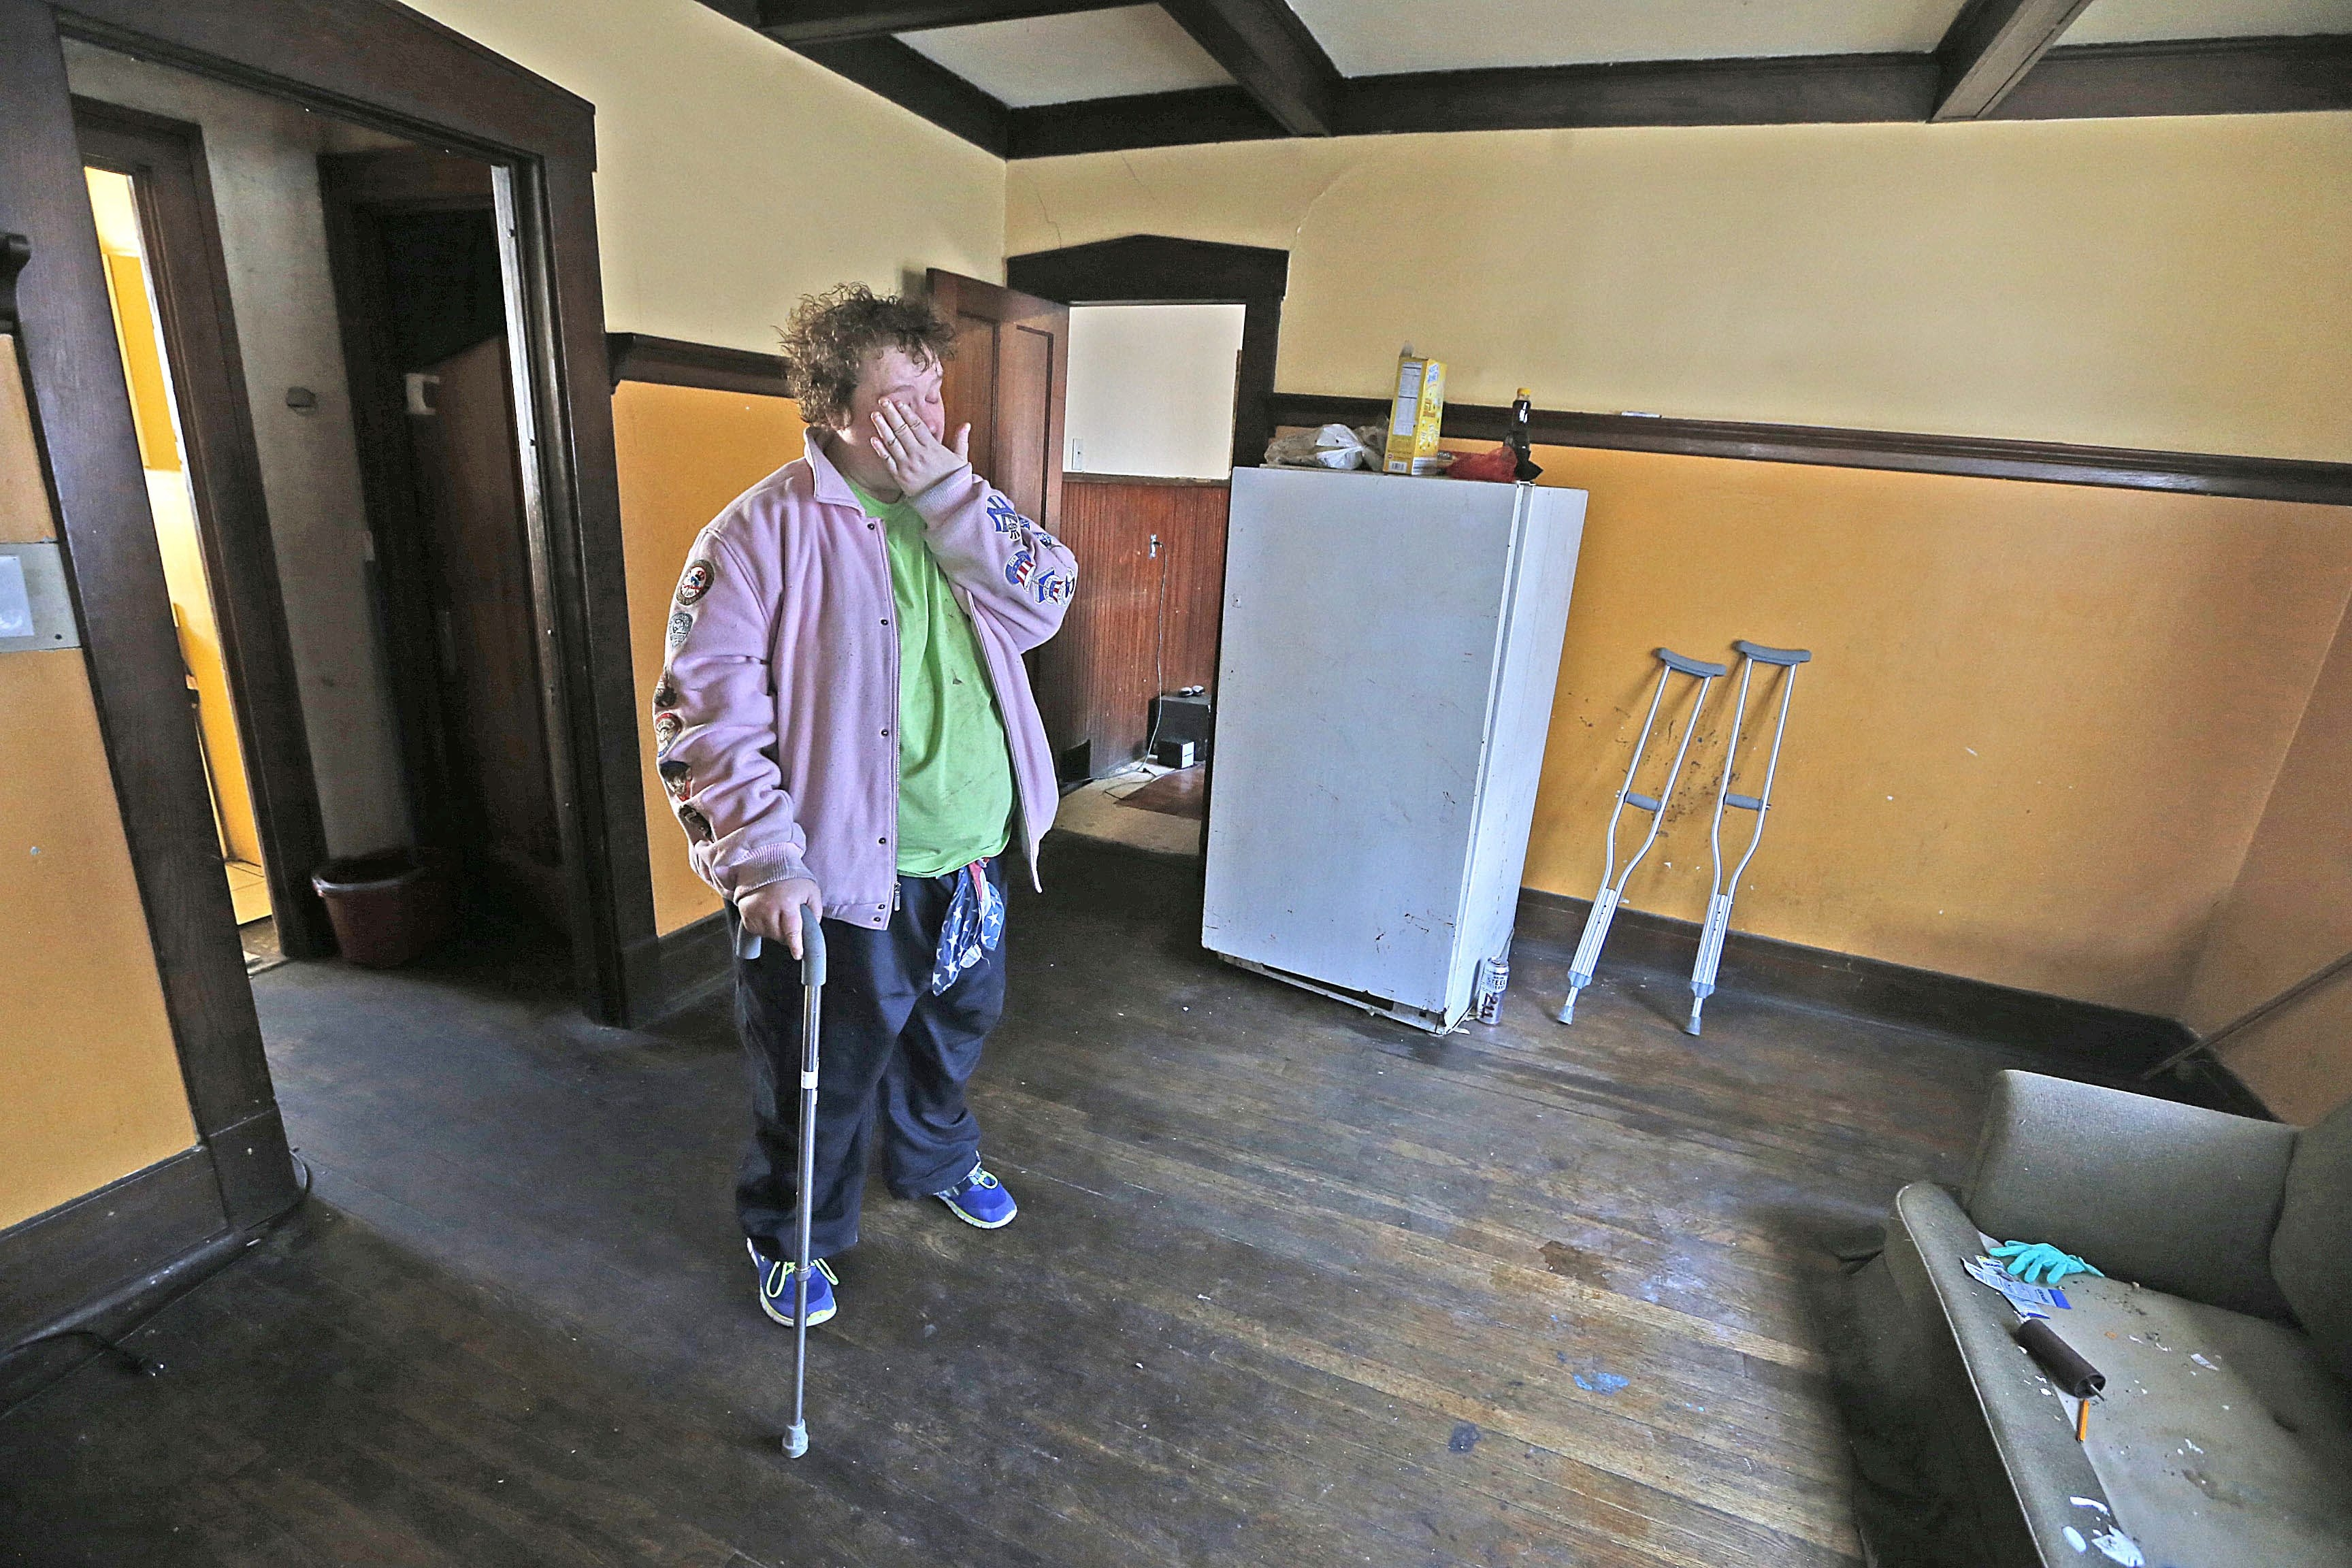 Debbie Ballard was living in deplorable conditions at 496 East Utica St. in Buffalo. She and the other seven residents have been moved out. (Robert Kirkham/Buffalo News)